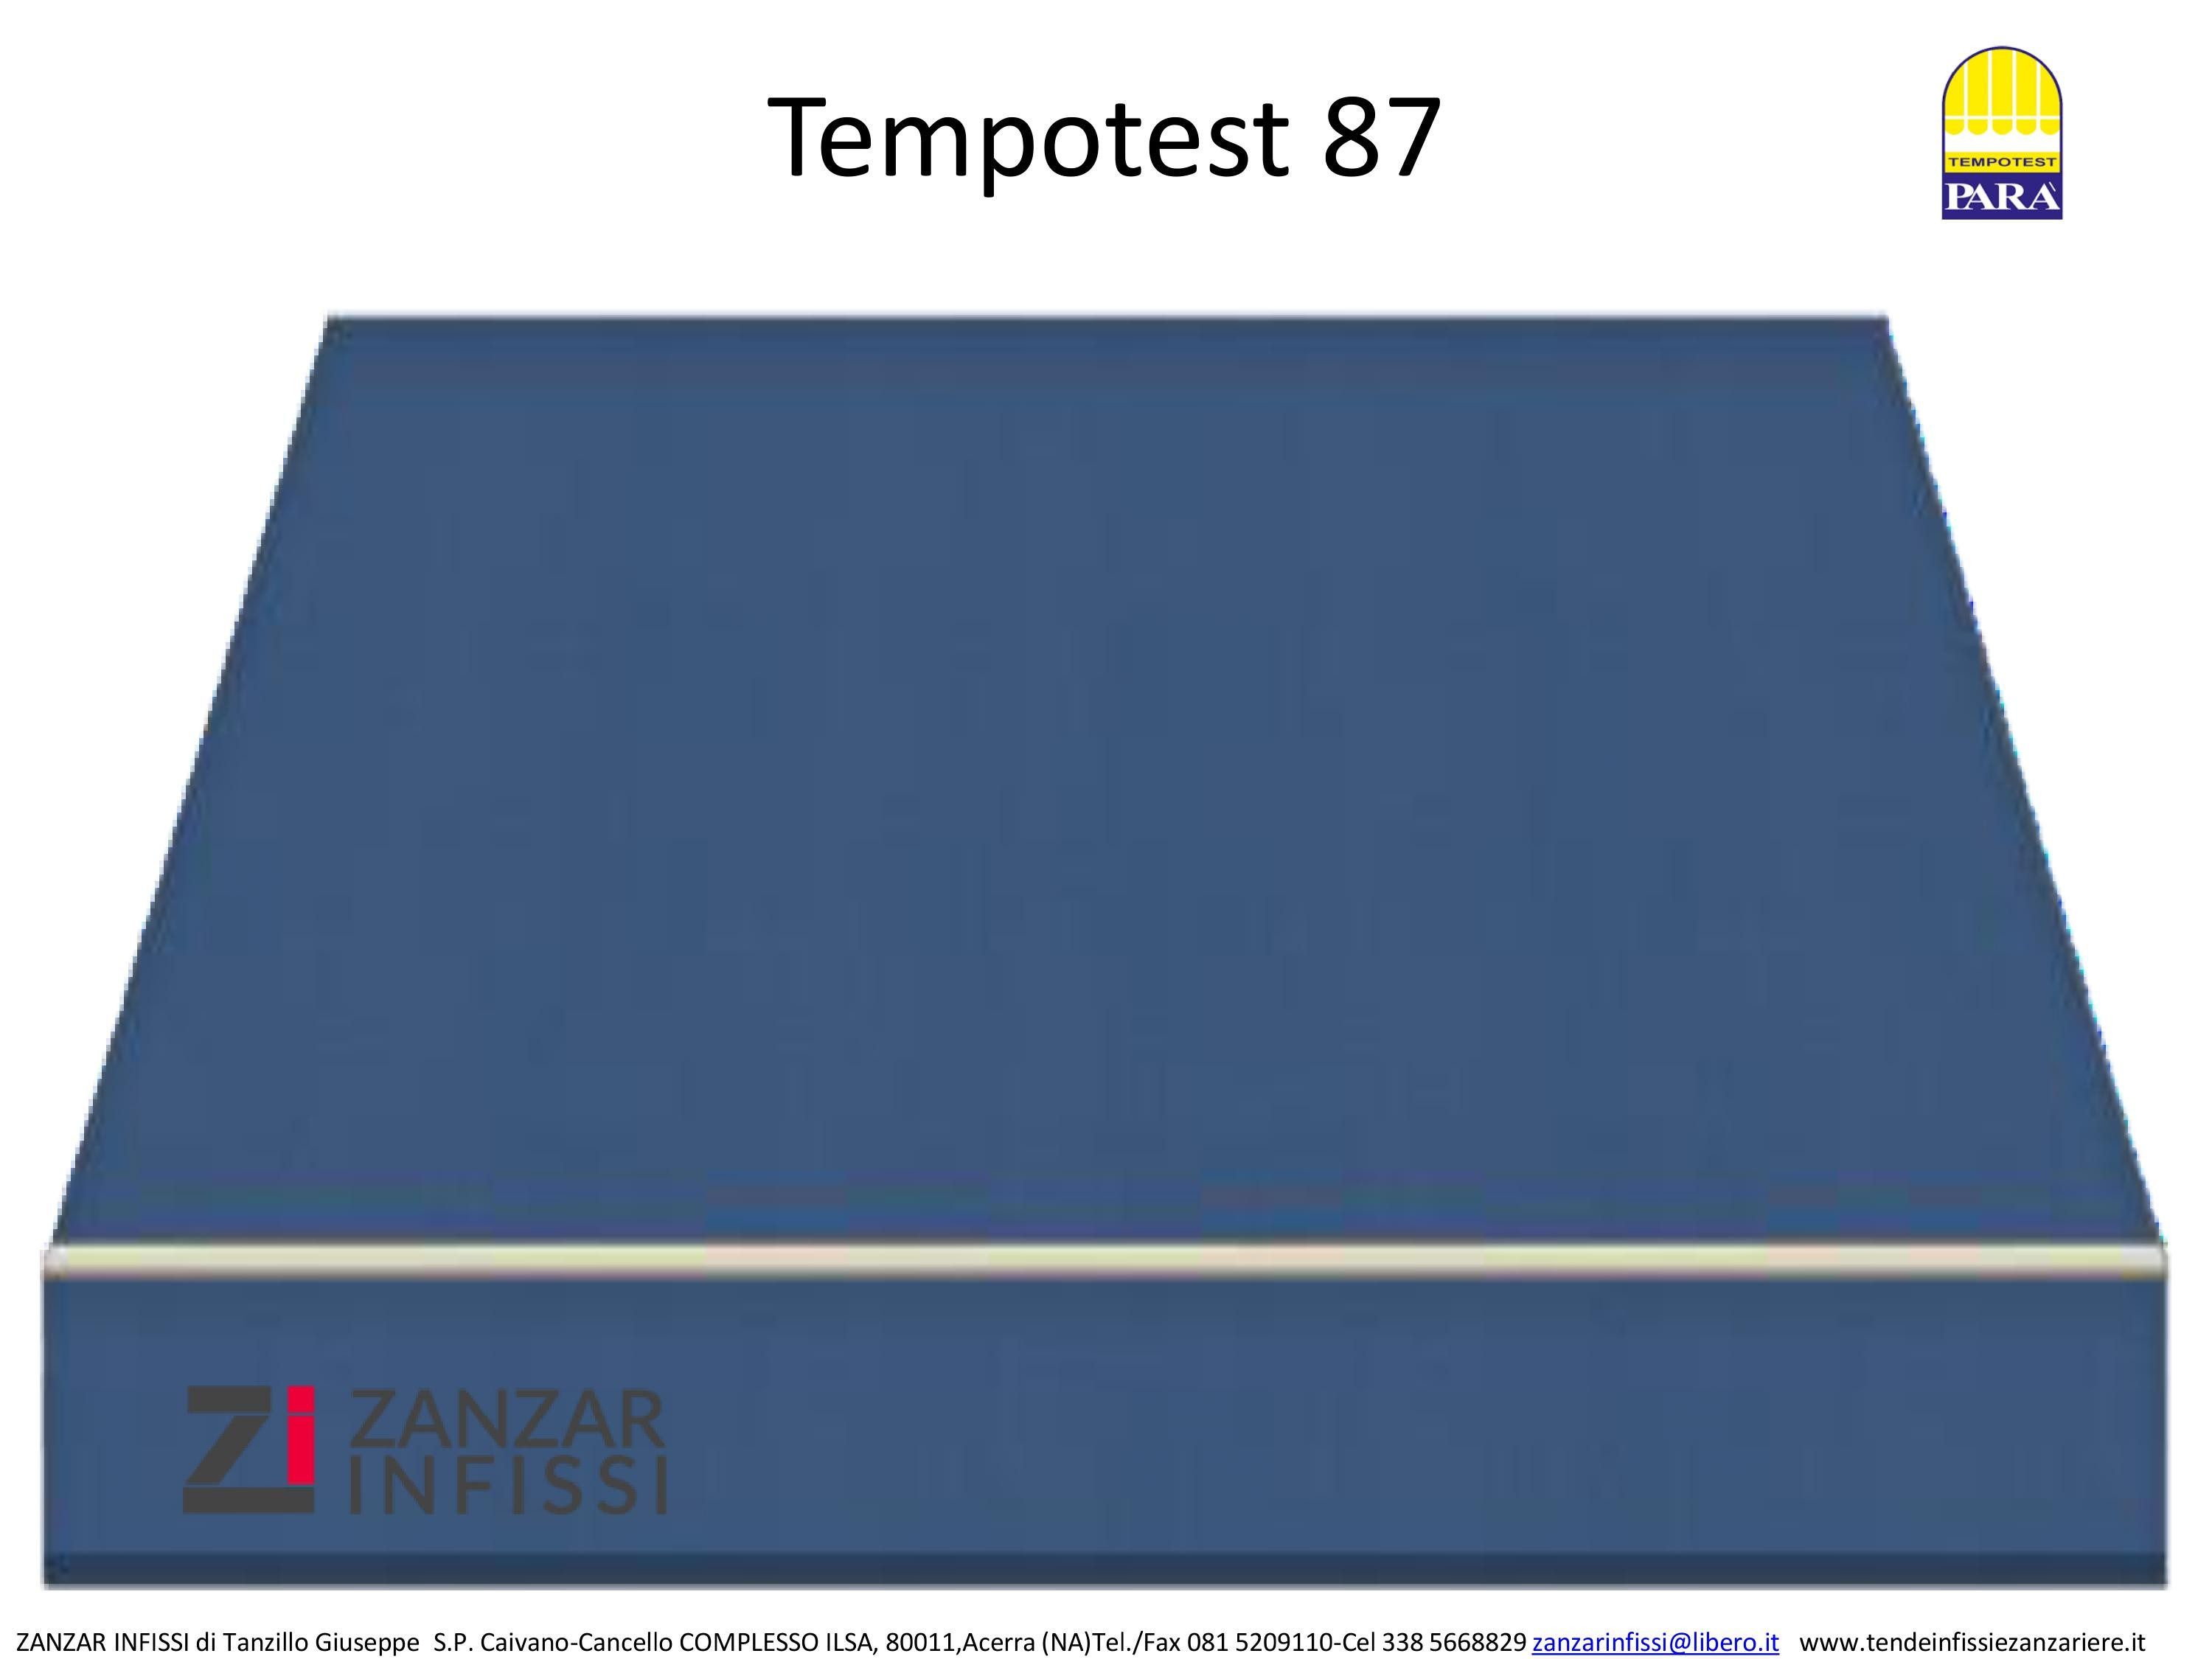 Tempotest 87